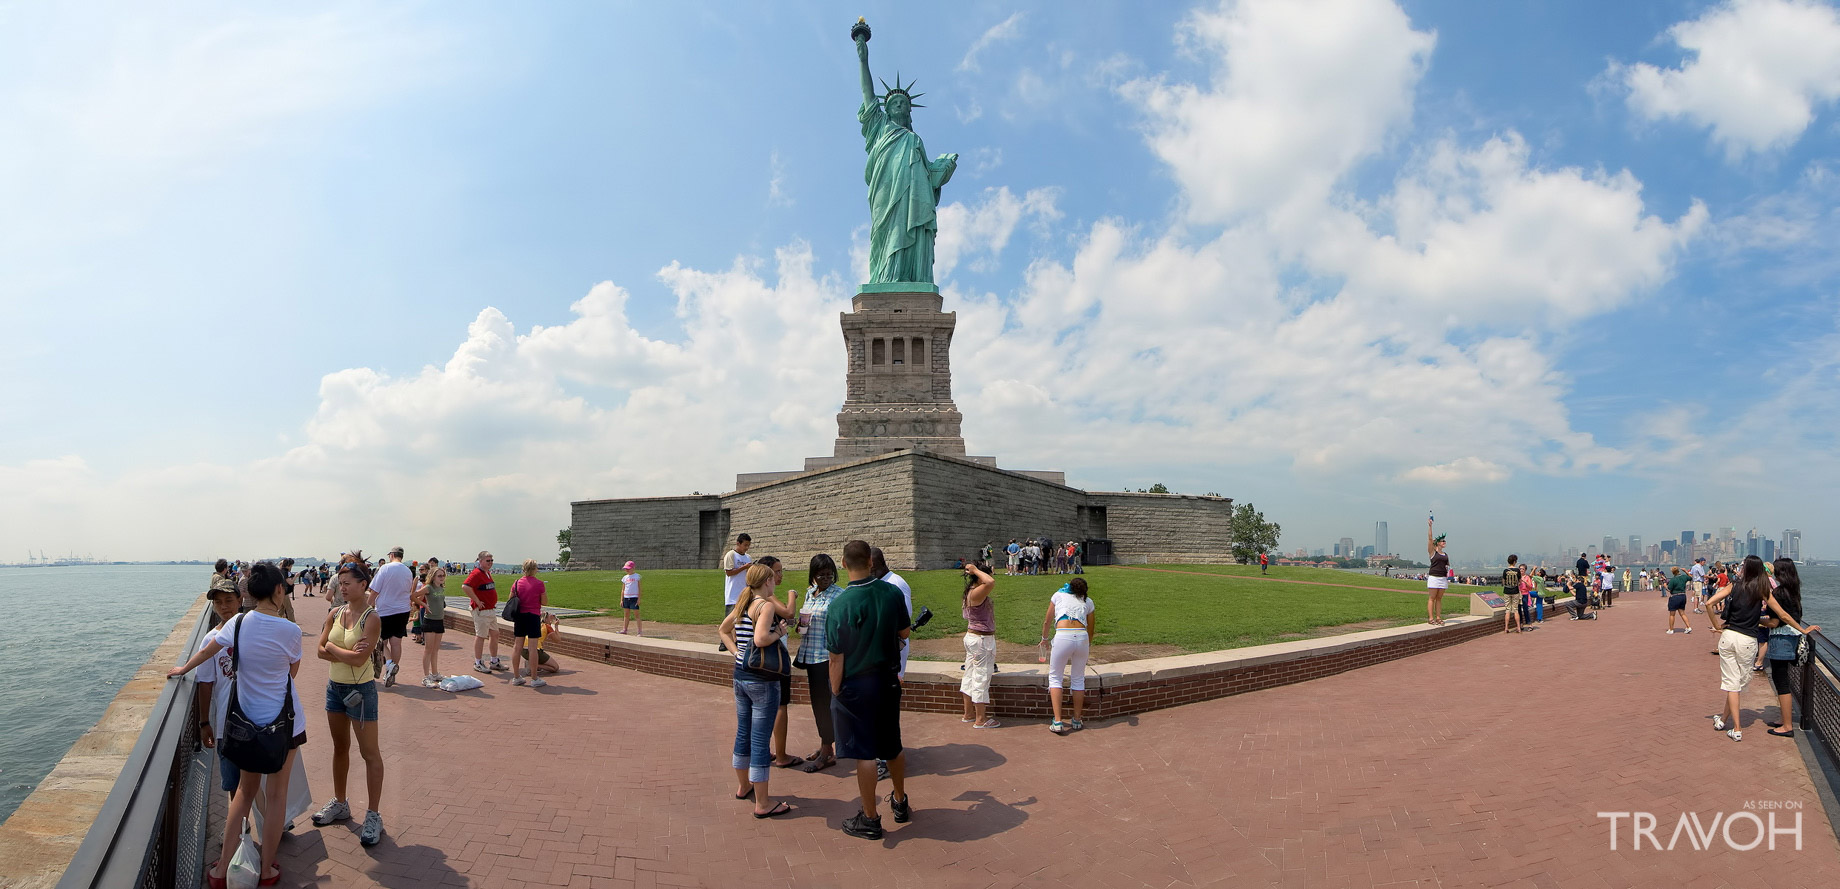 Take a Trip to Ellis Island - The Top 5 Exciting Spring Break Activities in NYC for Young Kids